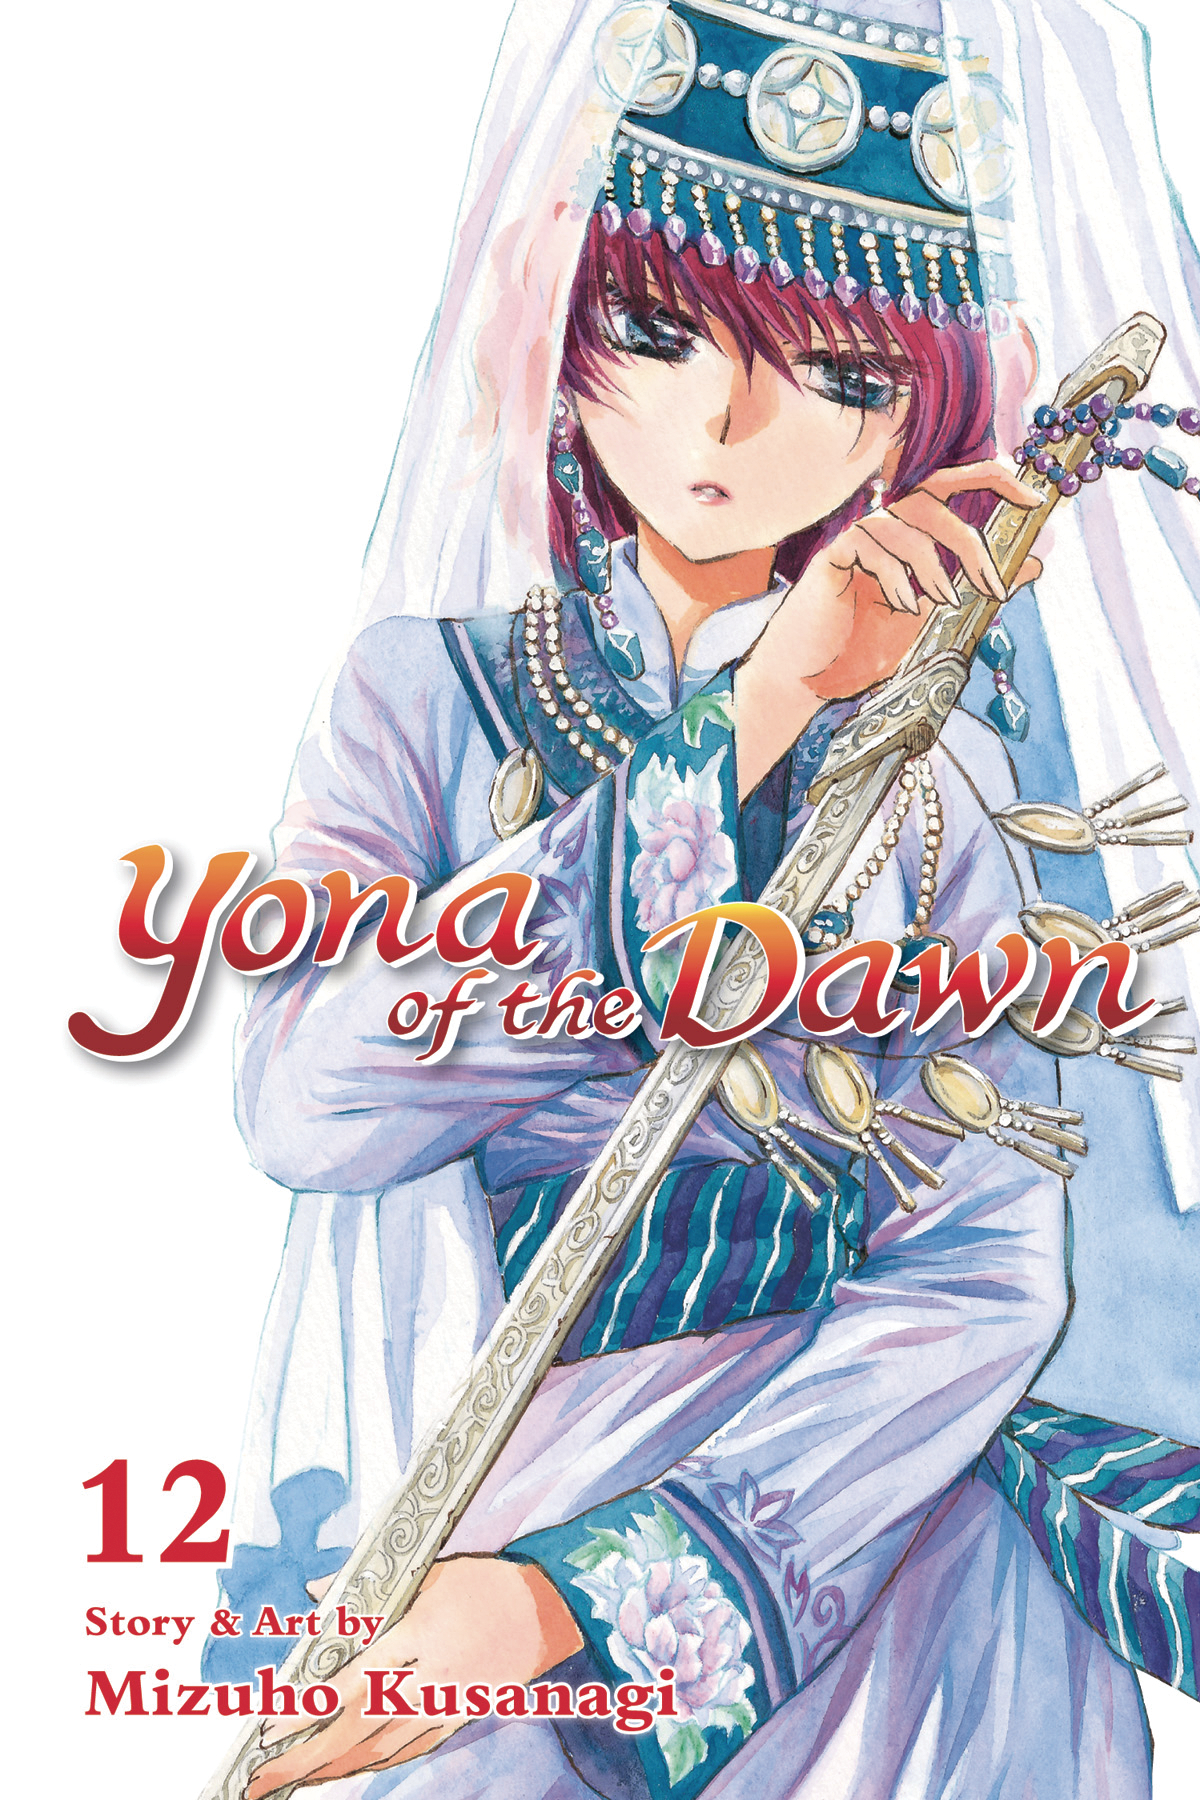 YONA OF THE DAWN GN VOL 12